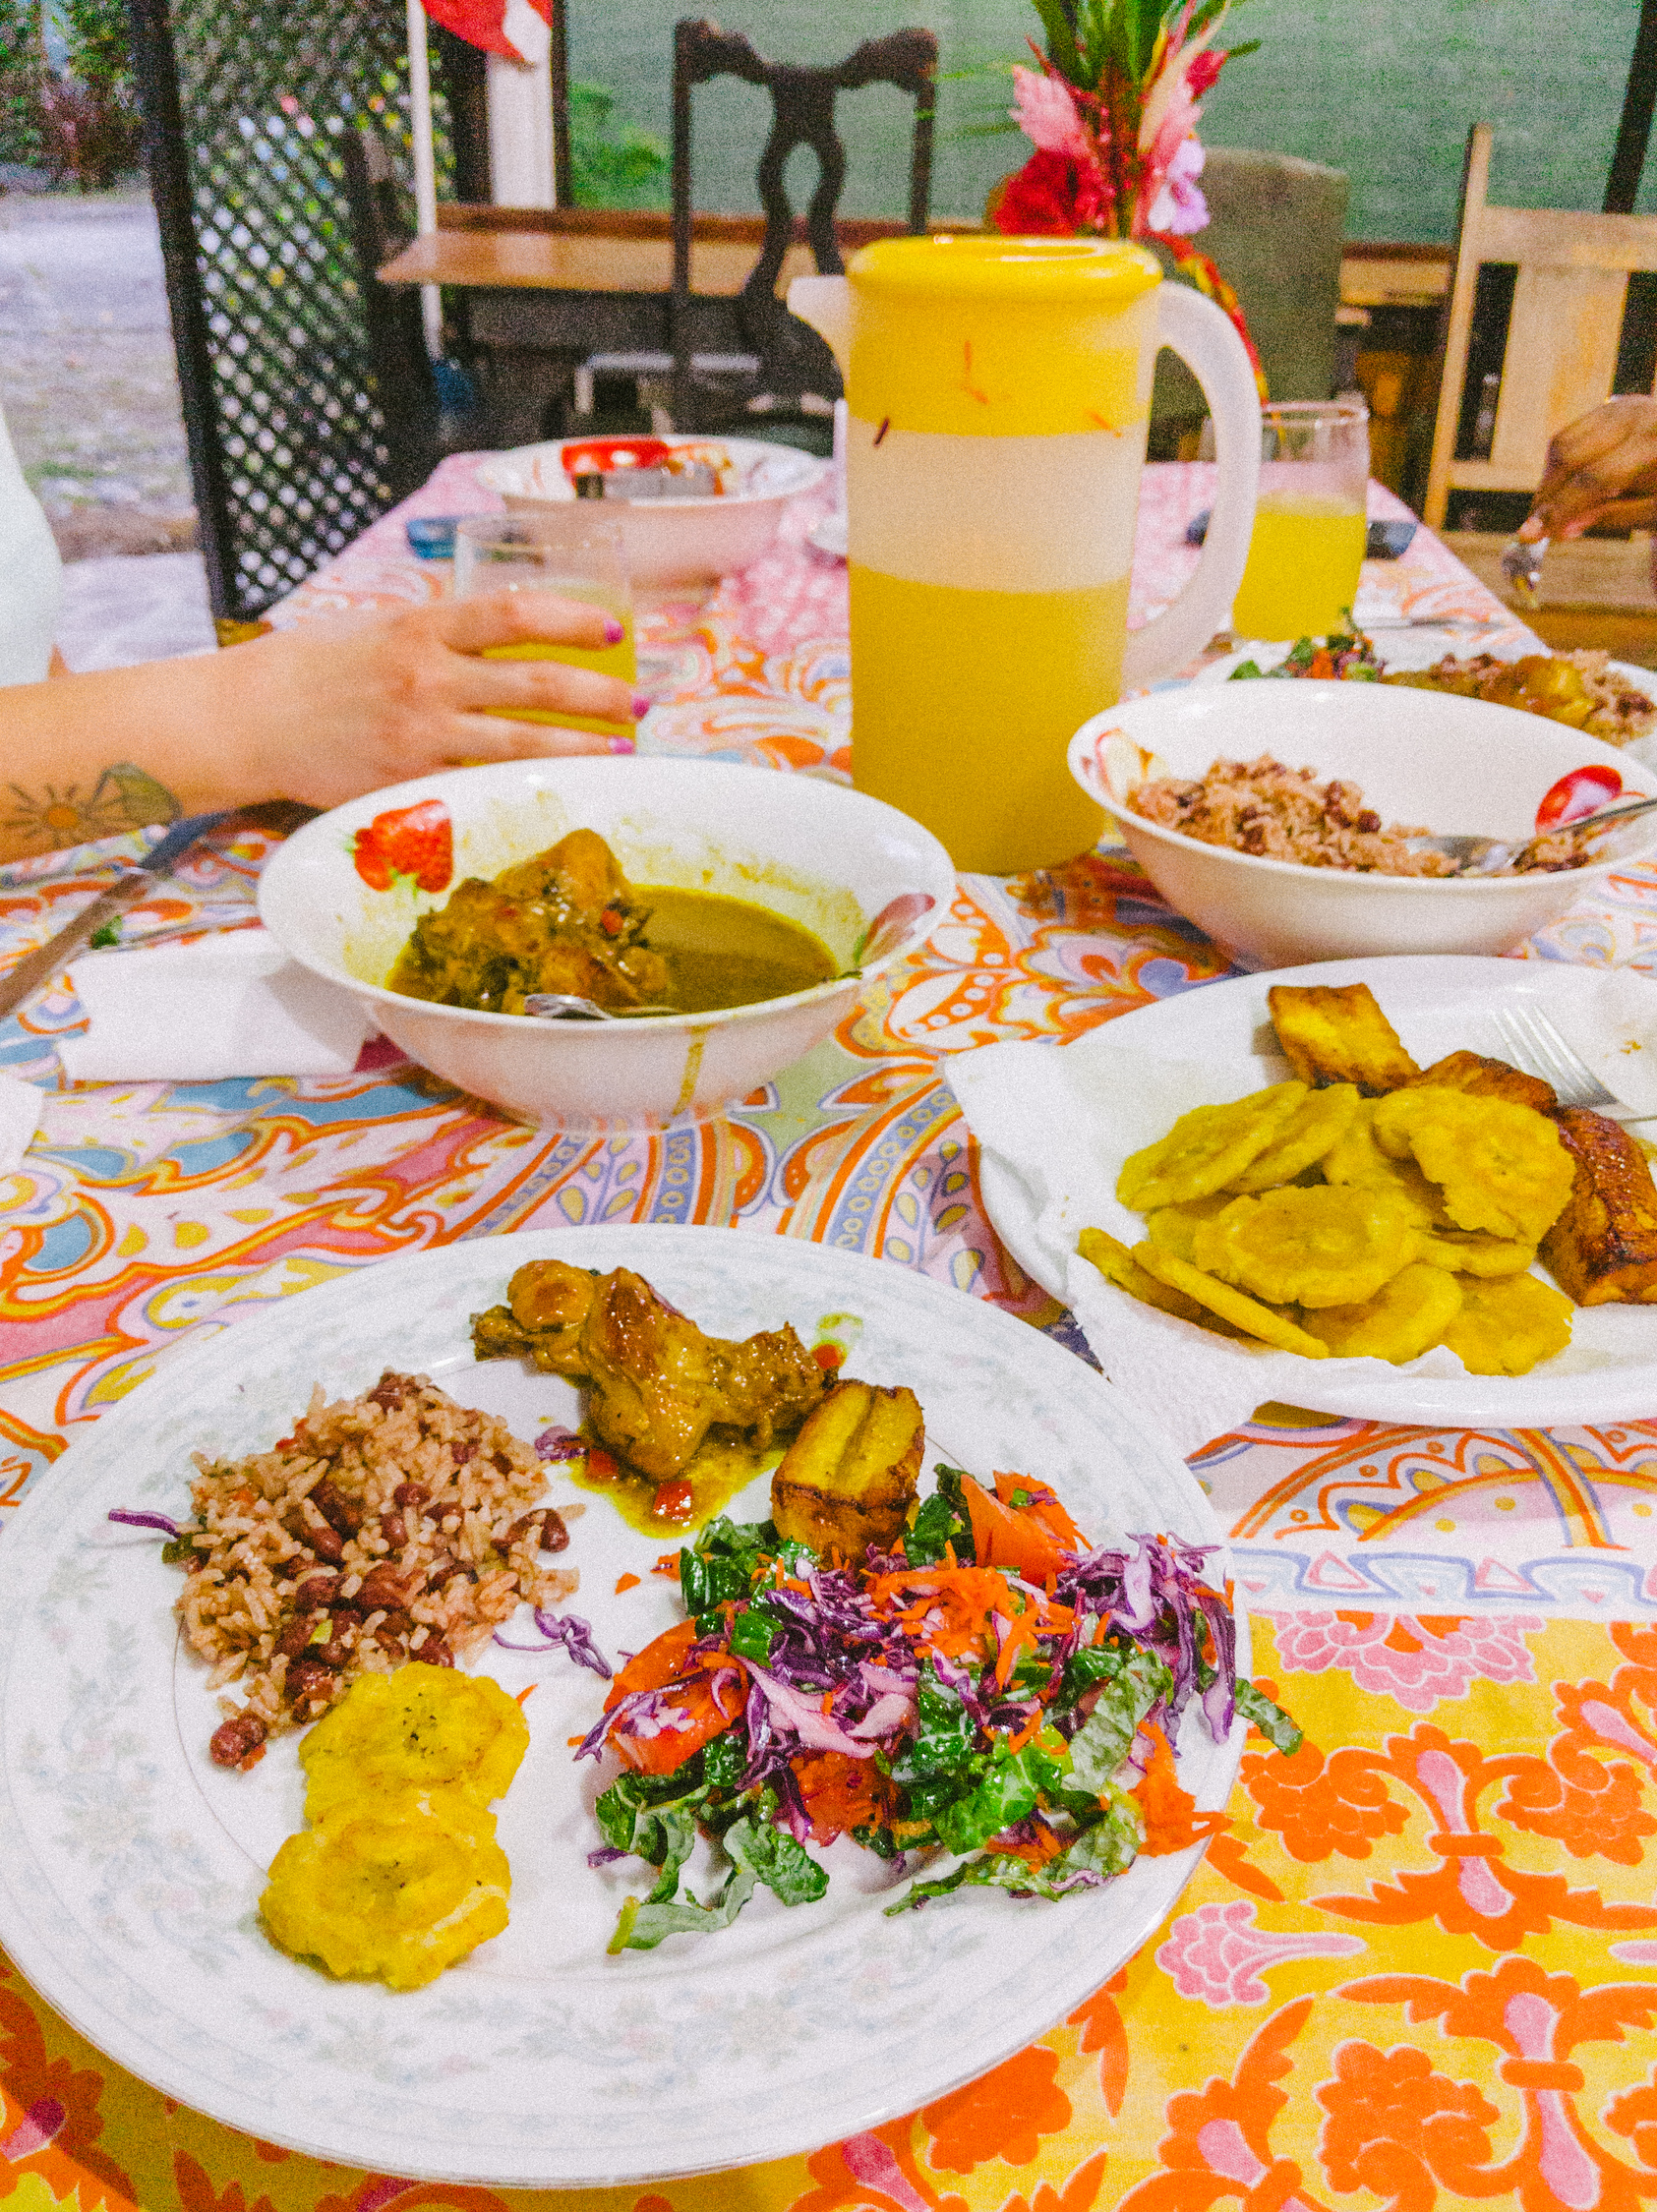 Traditional meal in Puerto Viejo Costa Rica with Caribbean rice and beans, patacones and chicken in Caribbean sauce.